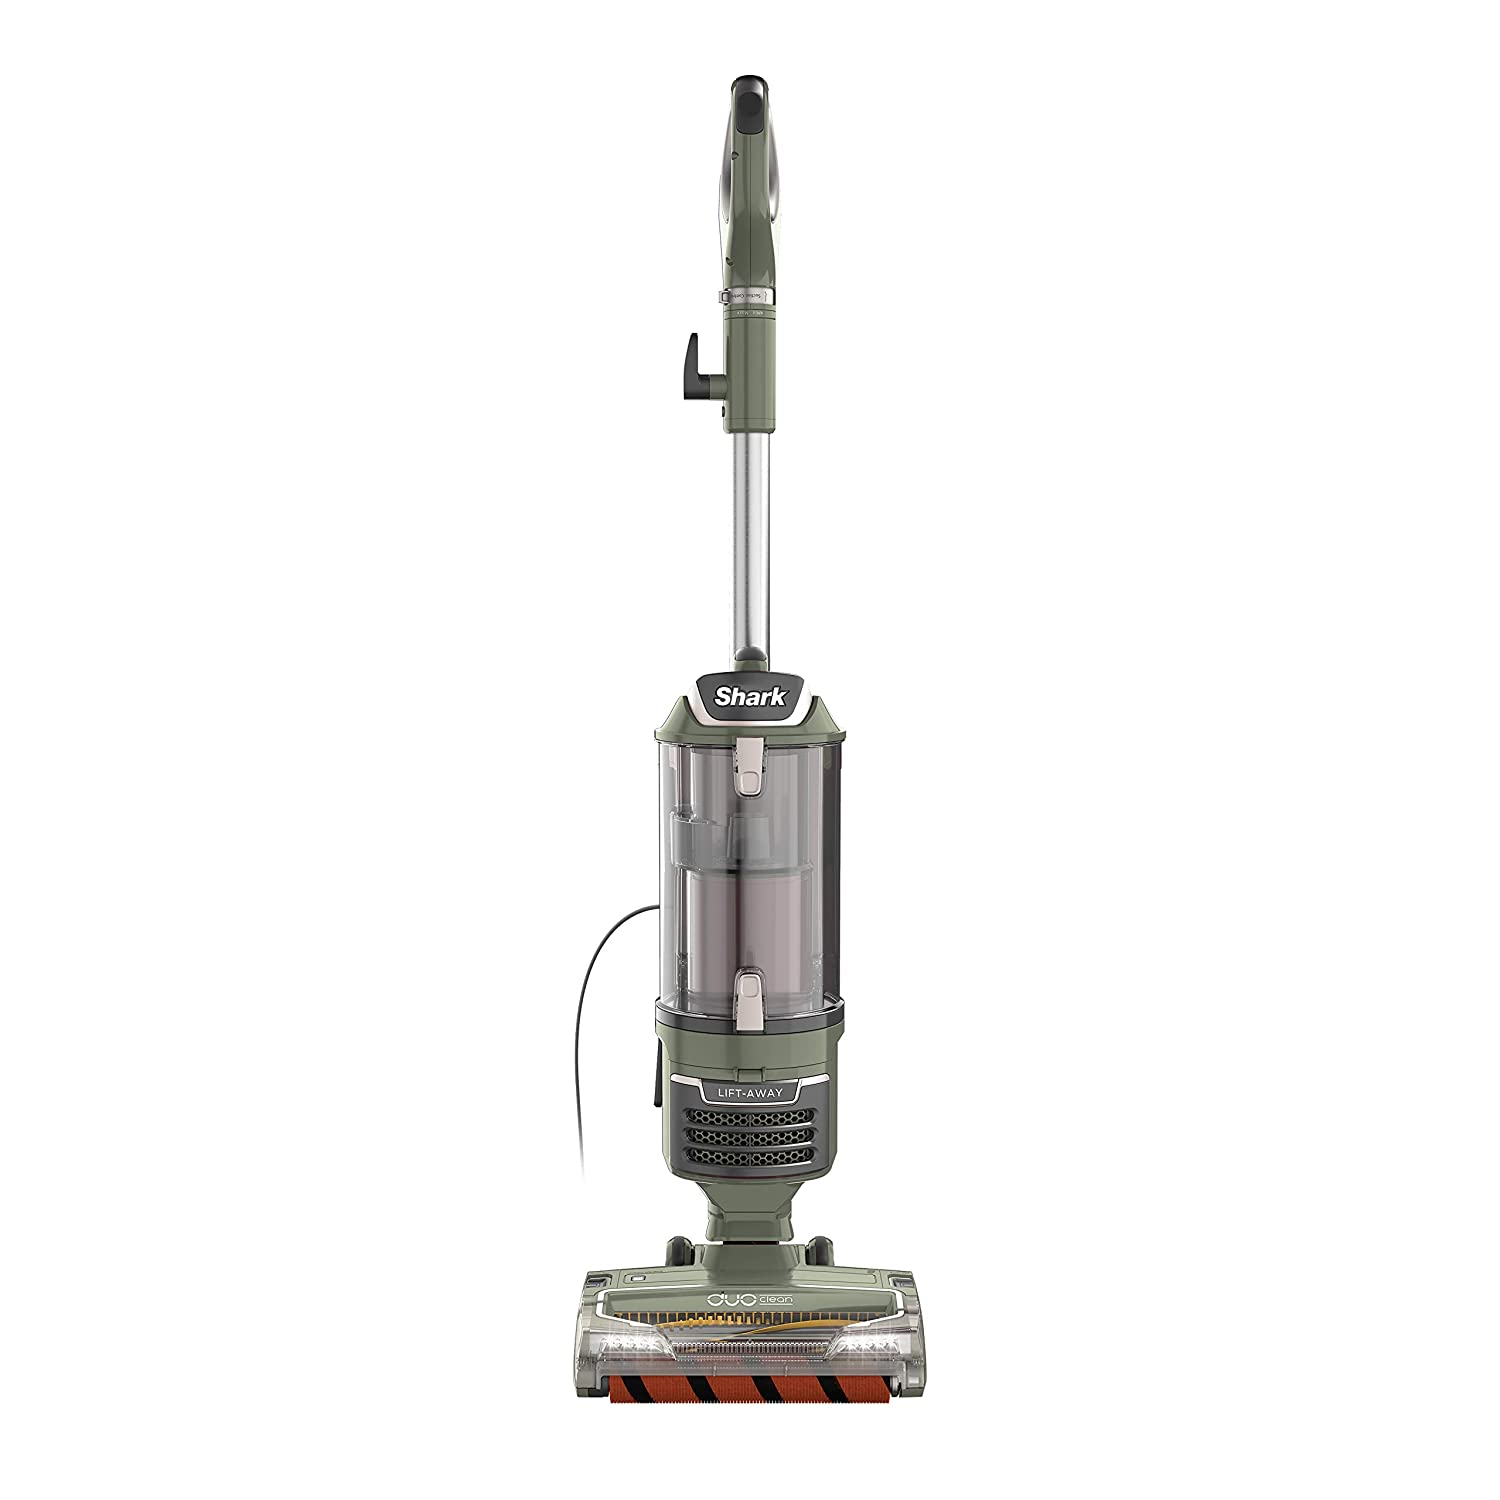 Shark Rotator Lift-Away DuoClean Pro with Self-Cleaning Brushroll Upright Vacuum (ZU782), XL Capacity, Sage Green